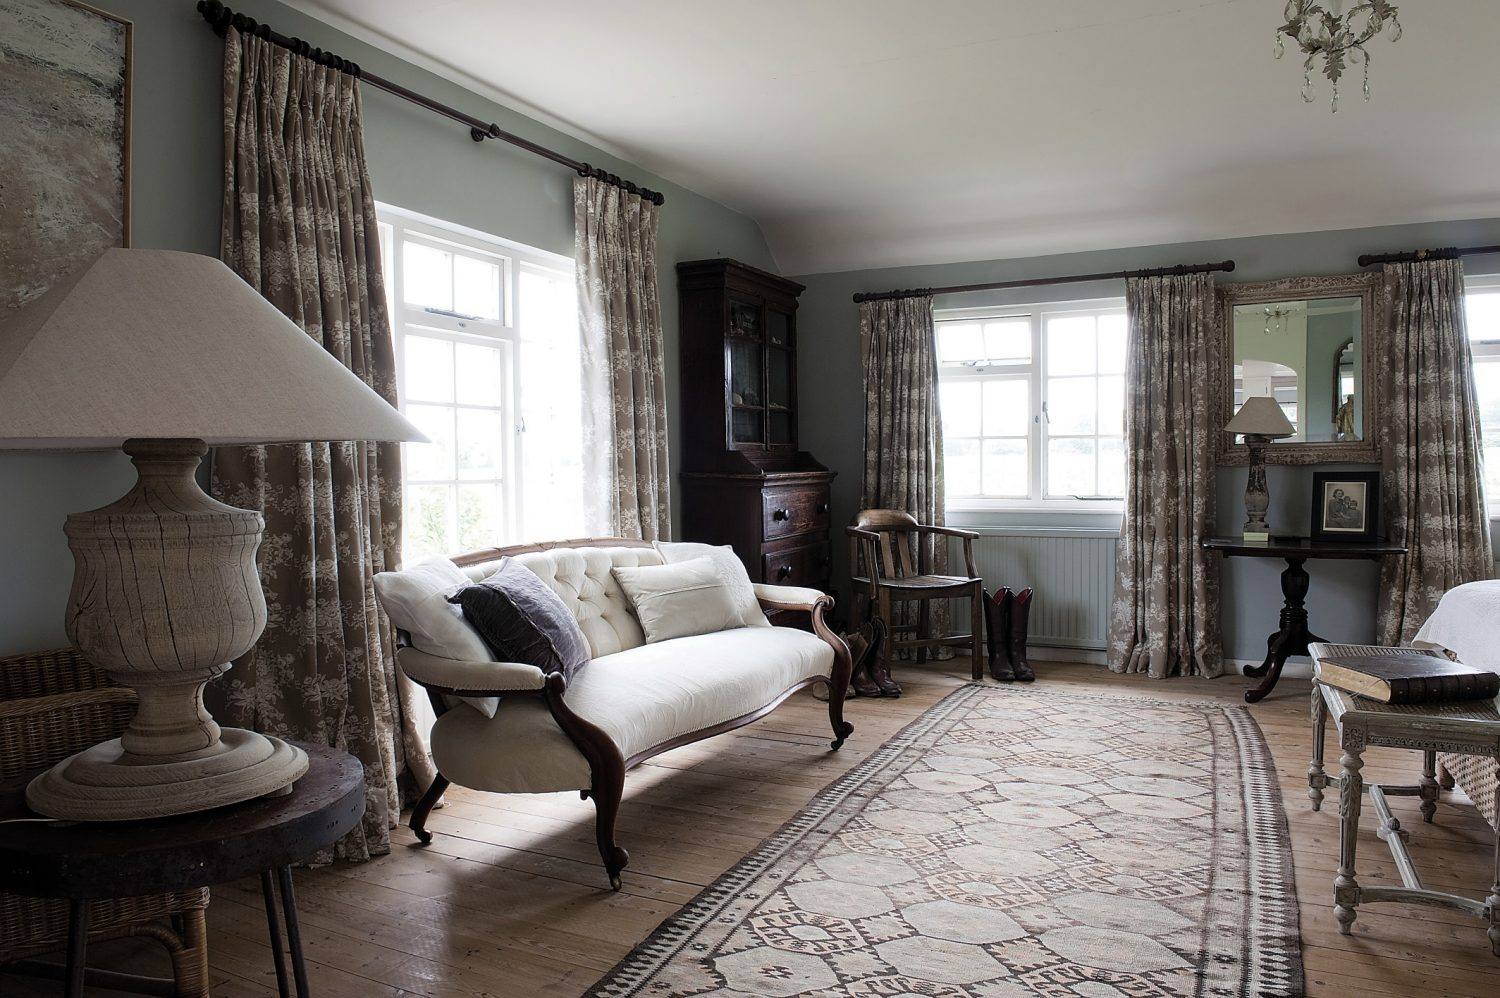 The walls in the bedroom are painted in Farrow & Ball's Light Blue and the light brown and white unglazed curtains Veronica found in St Tropez. At the foot of the bed, by the window, stands an elegant white sofa